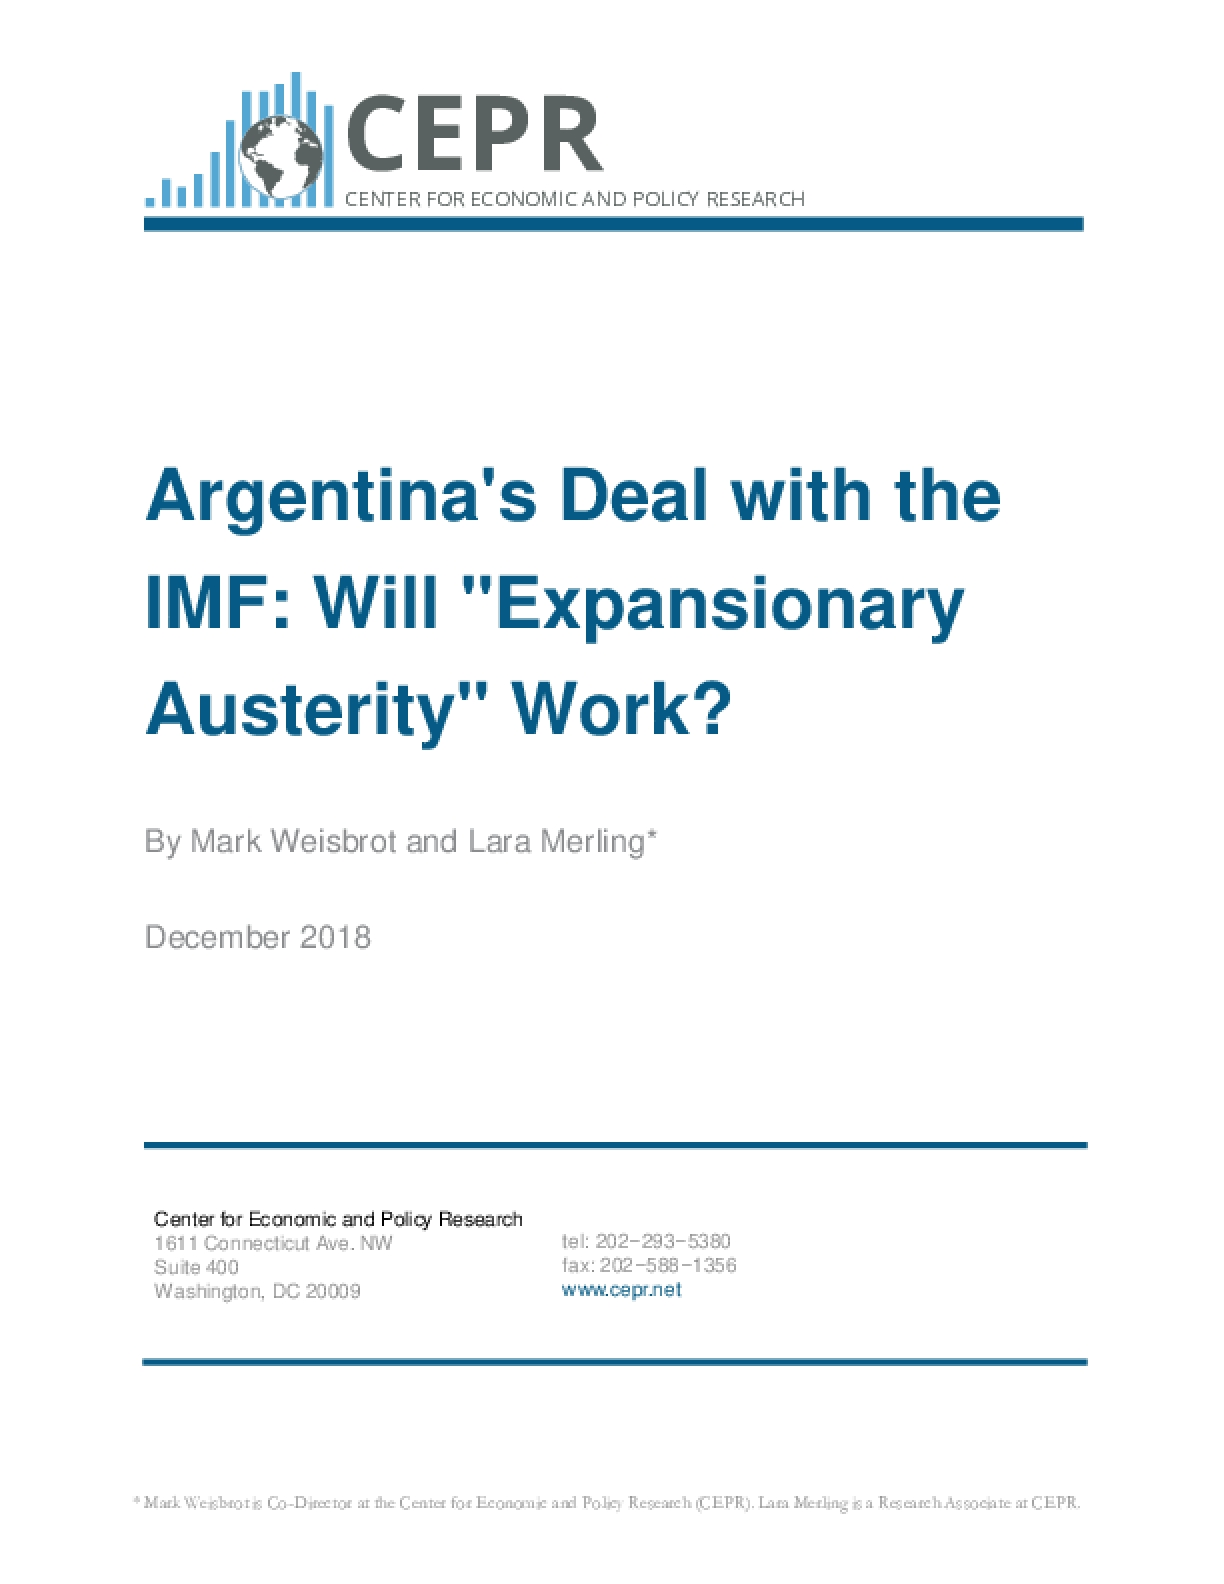 """Argentina's Deal with the IMF: Will """"Expansionary Austerity"""" Work?"""